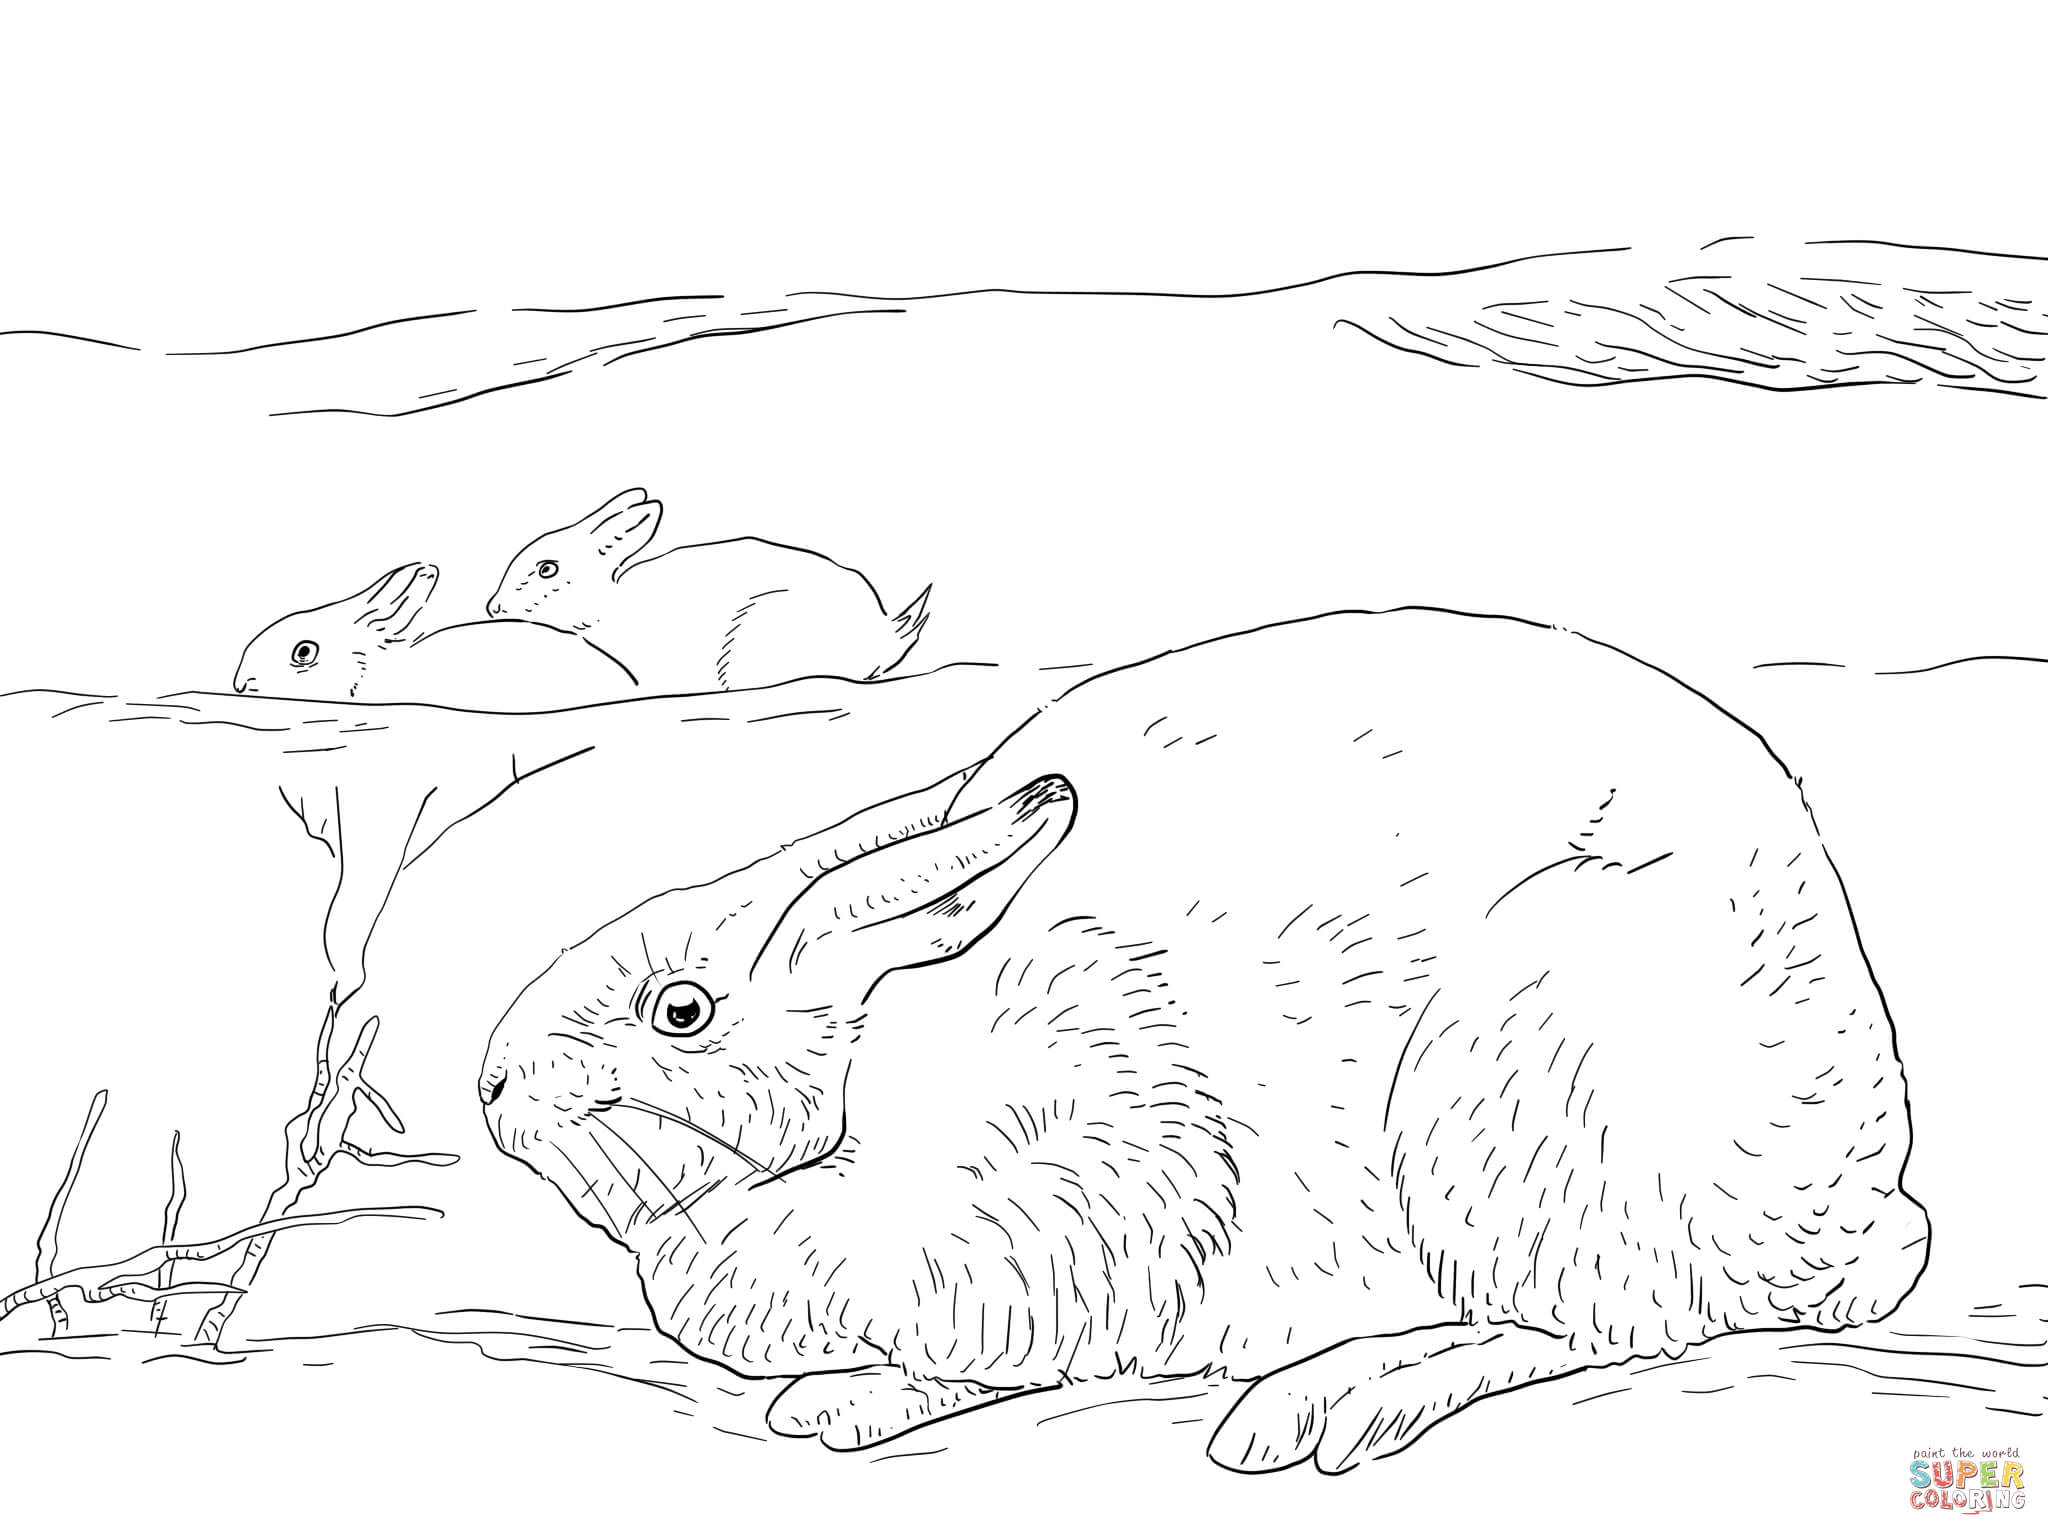 snowshoe hare coloring page arctic hares coloring page free printable coloring pages page snowshoe coloring hare